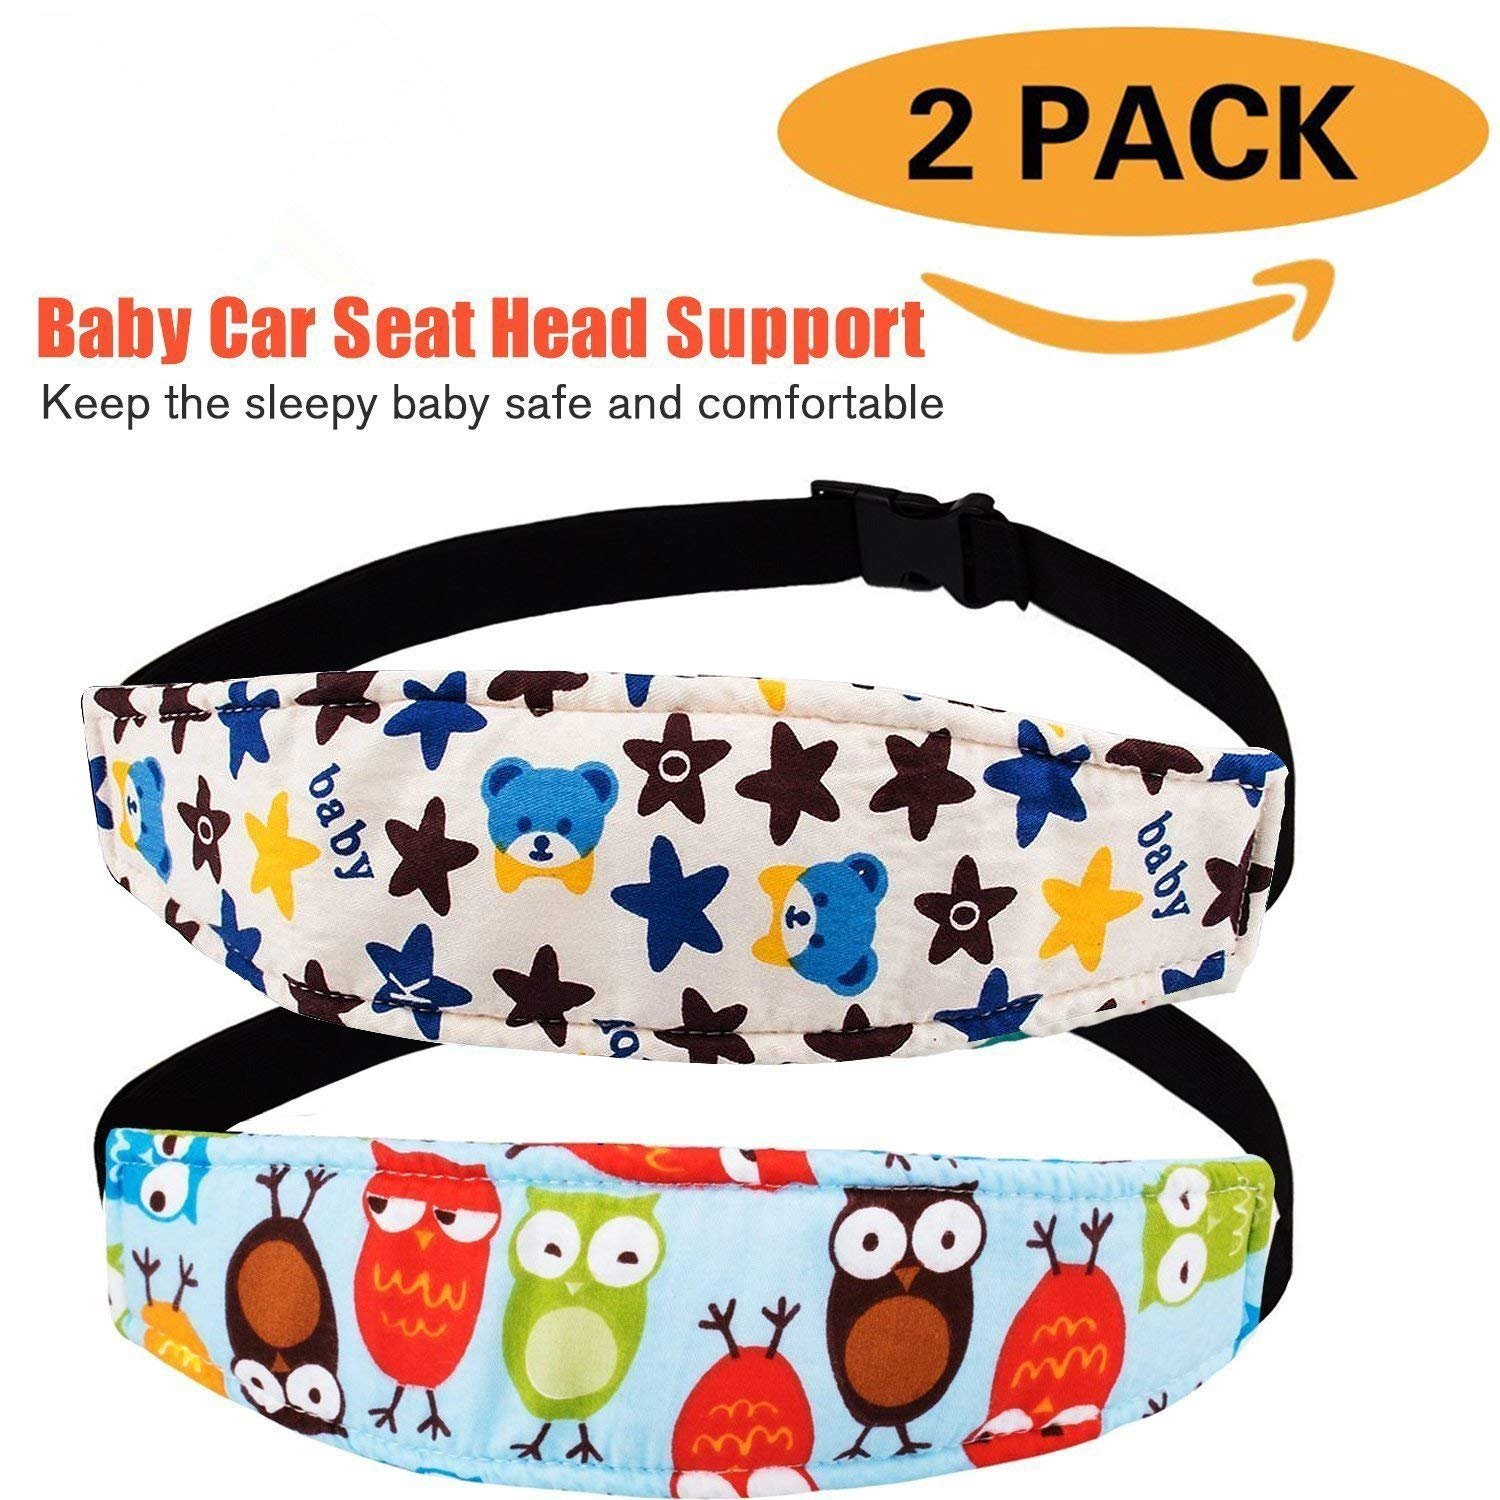 Adjustable Car Seat Sleeping Head Support Strap Baby Head Support Band and Toddler Car Seat Neck Relief 2 Pack Offers Protection and Safety for Kids